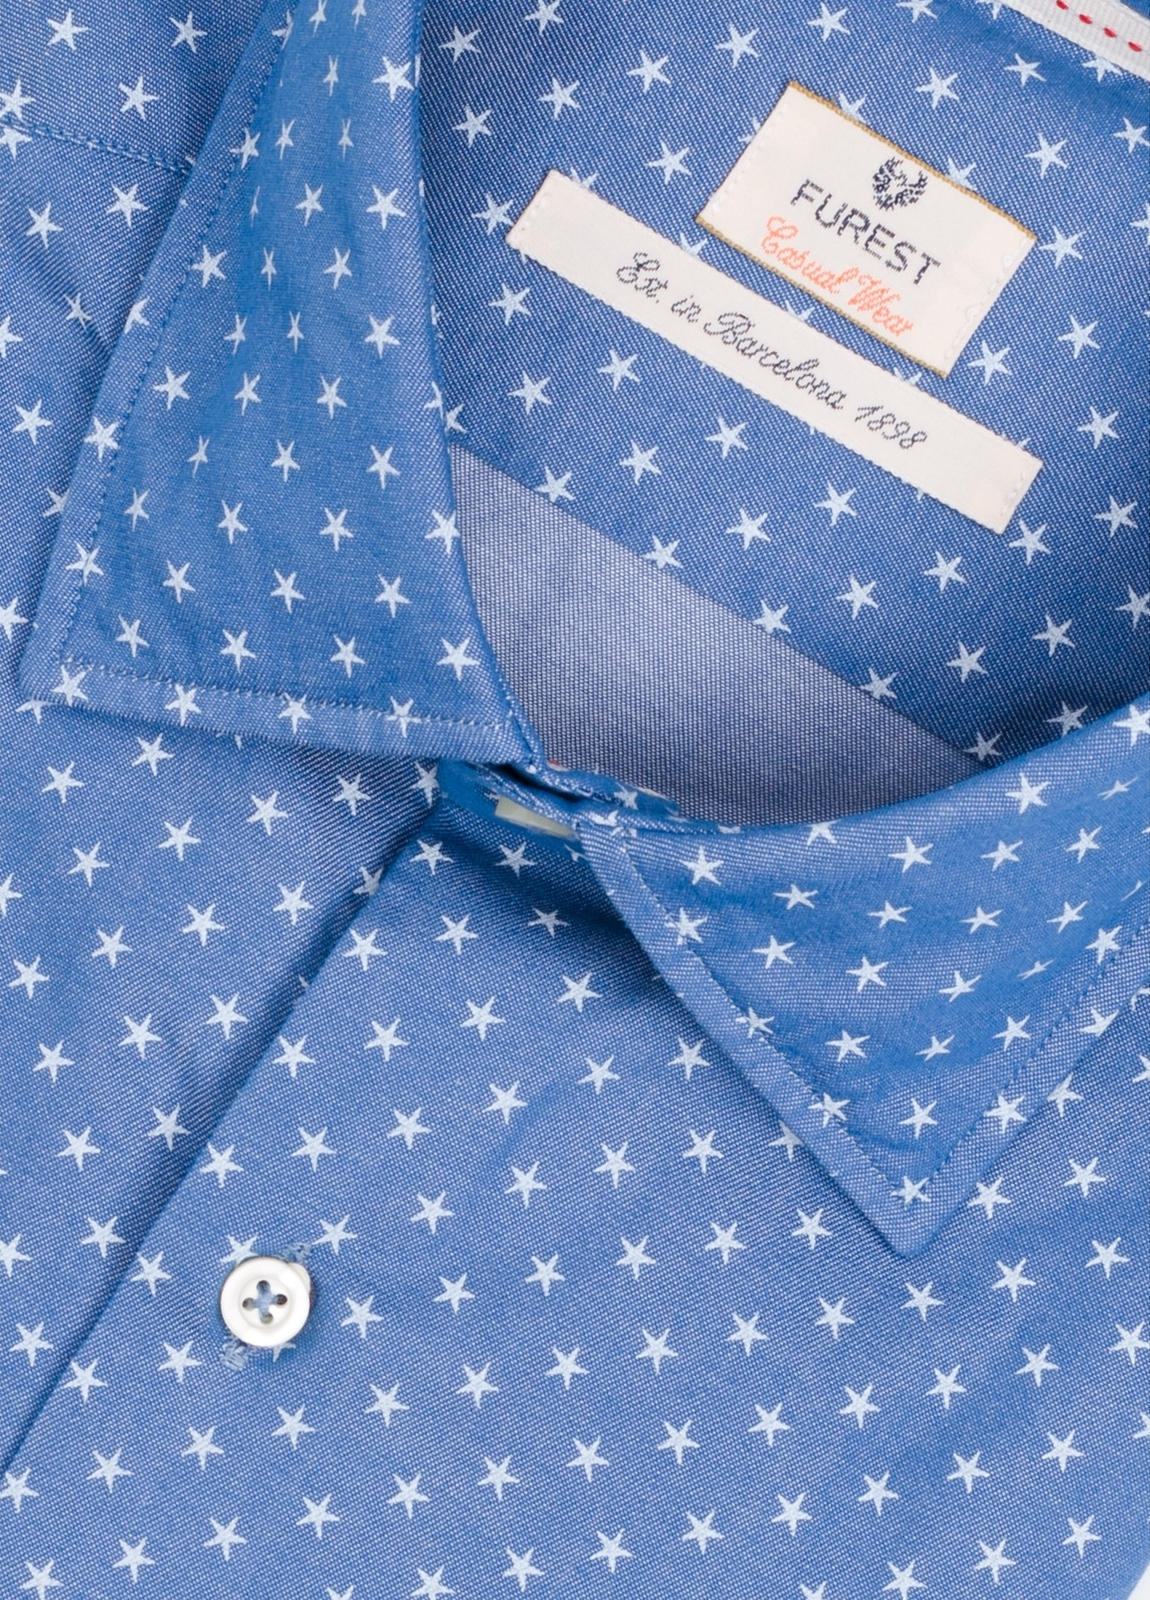 Camisa Casual Wear SLIM FIT Modelo PORTO estampado estrellas color azul denim. 100% Algodón. - Ítem1